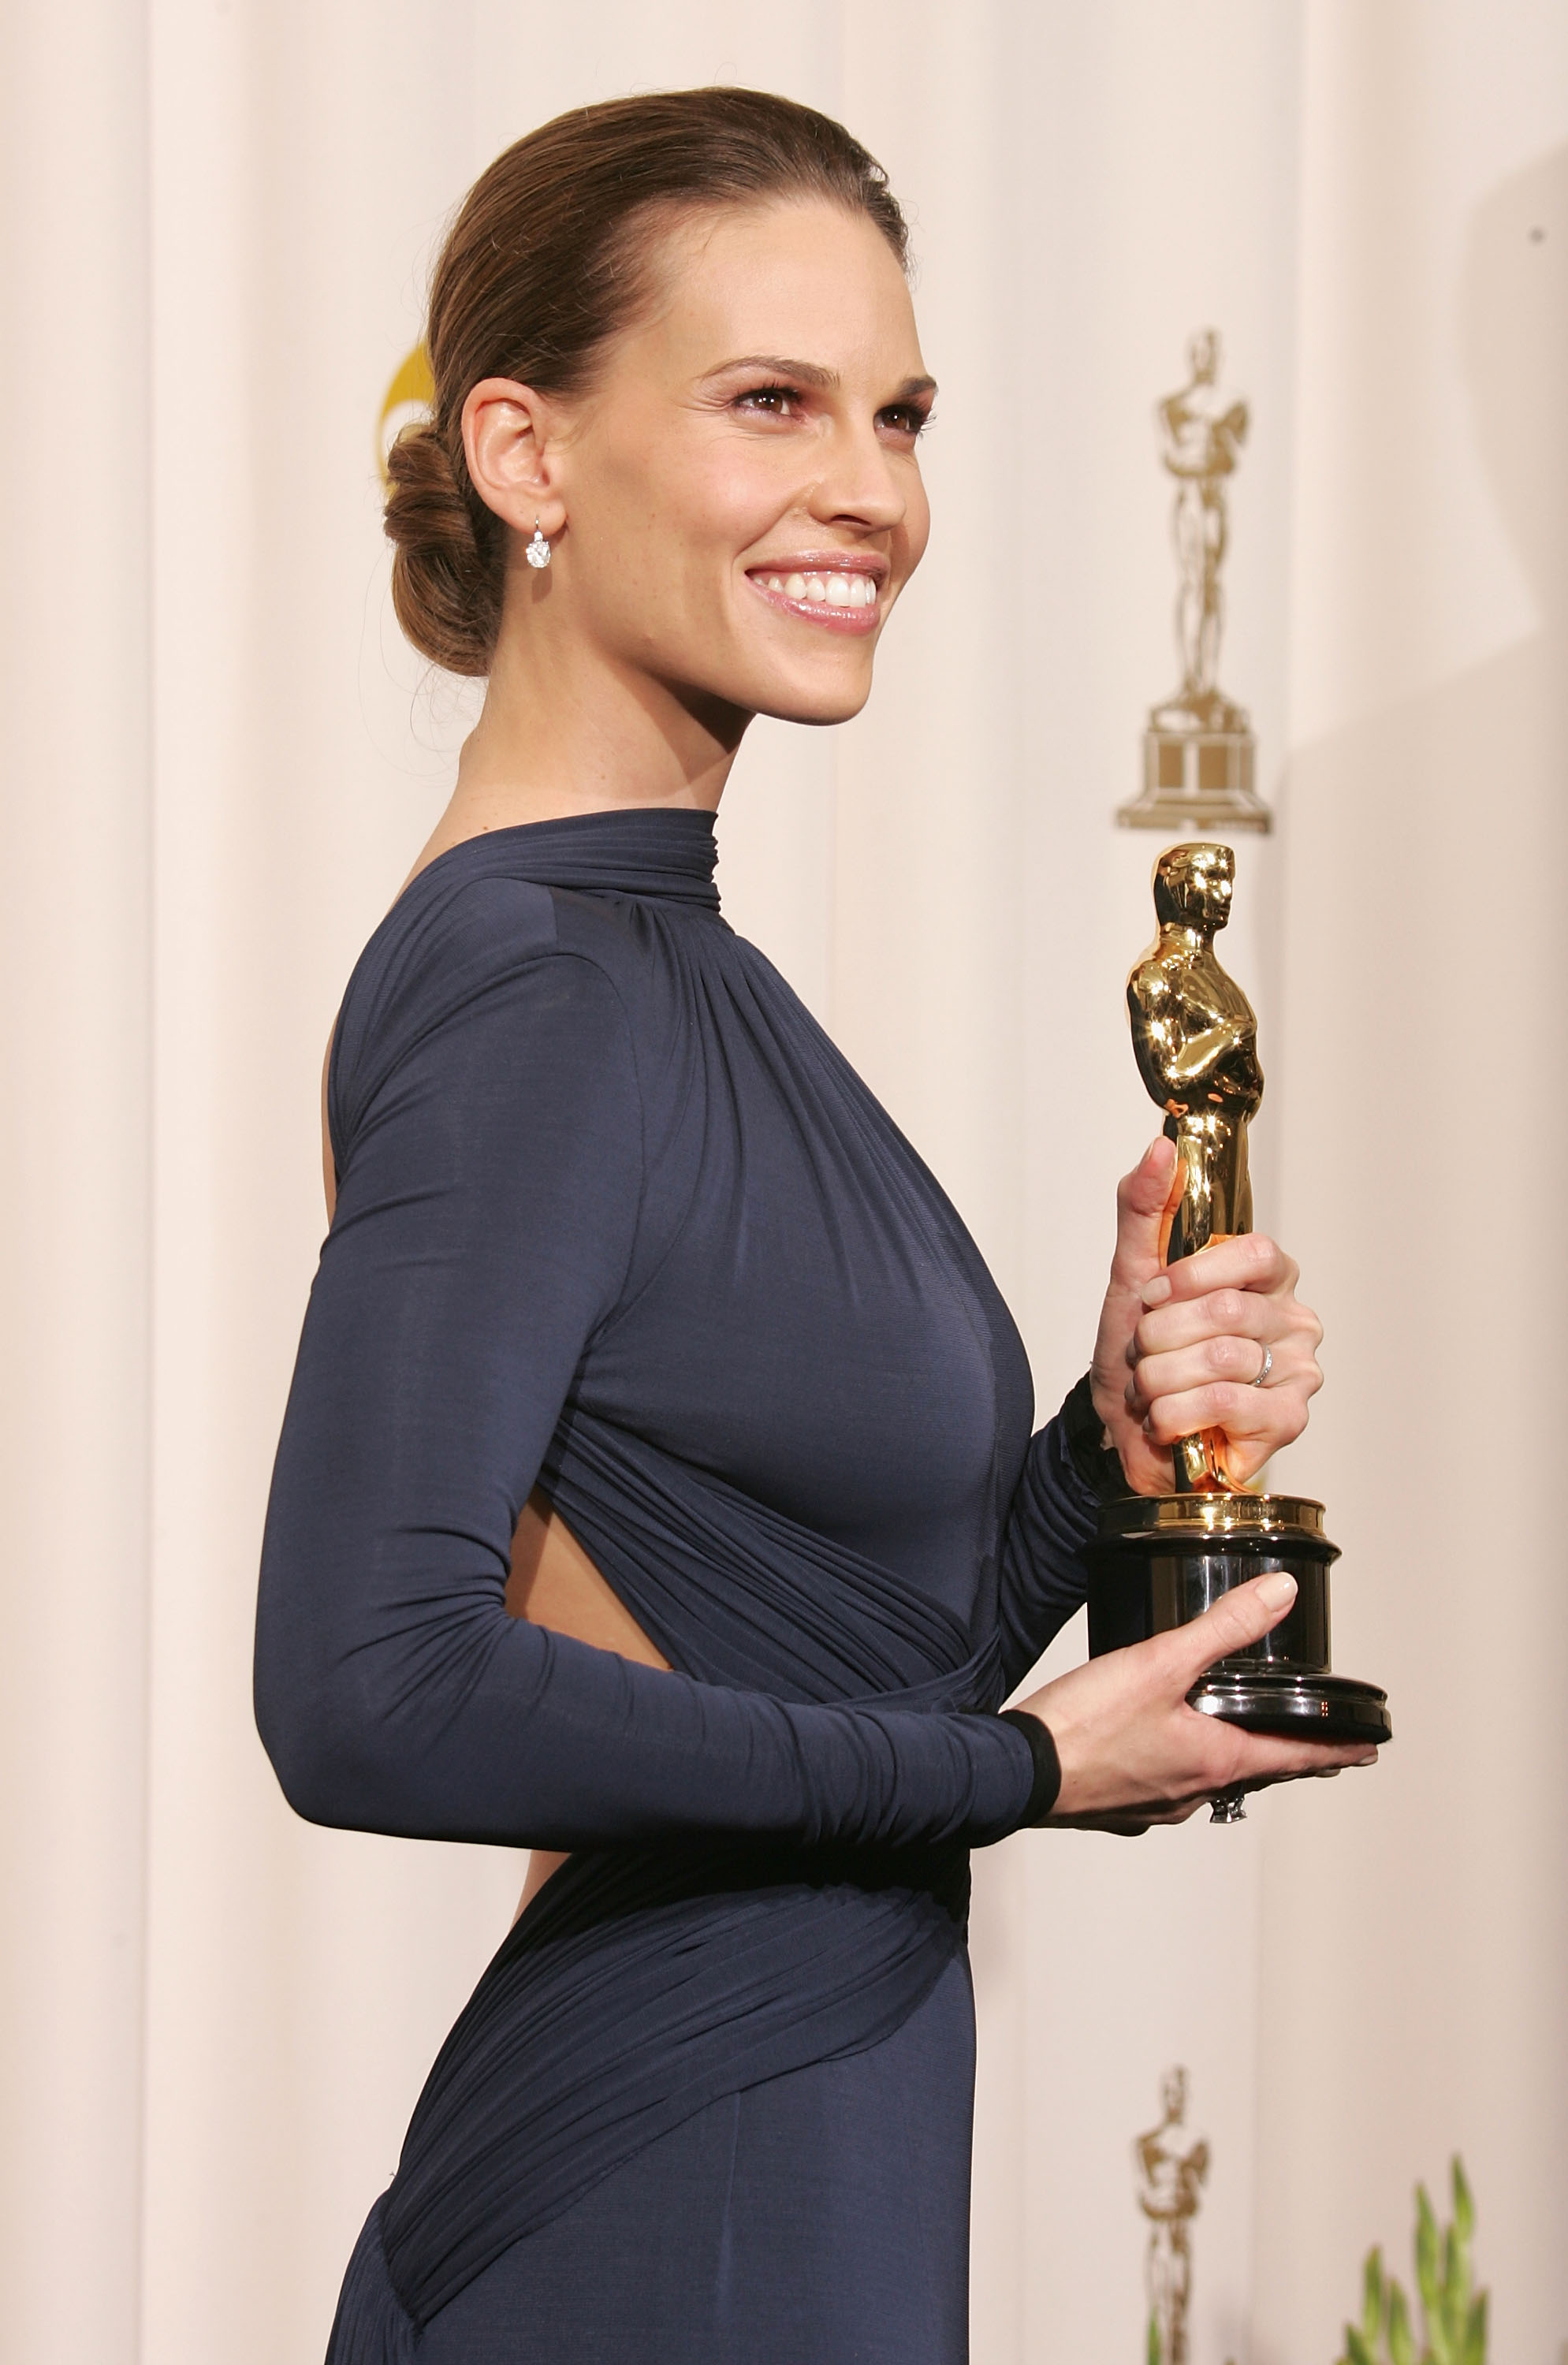 """Actress Hilary Swank poses with her award for Best Actress for """"Million Dollar Baby"""" backstage during the 77th Annual Academy Awards on February 27, 2005 at the Kodak Theater in Hollywood, California."""